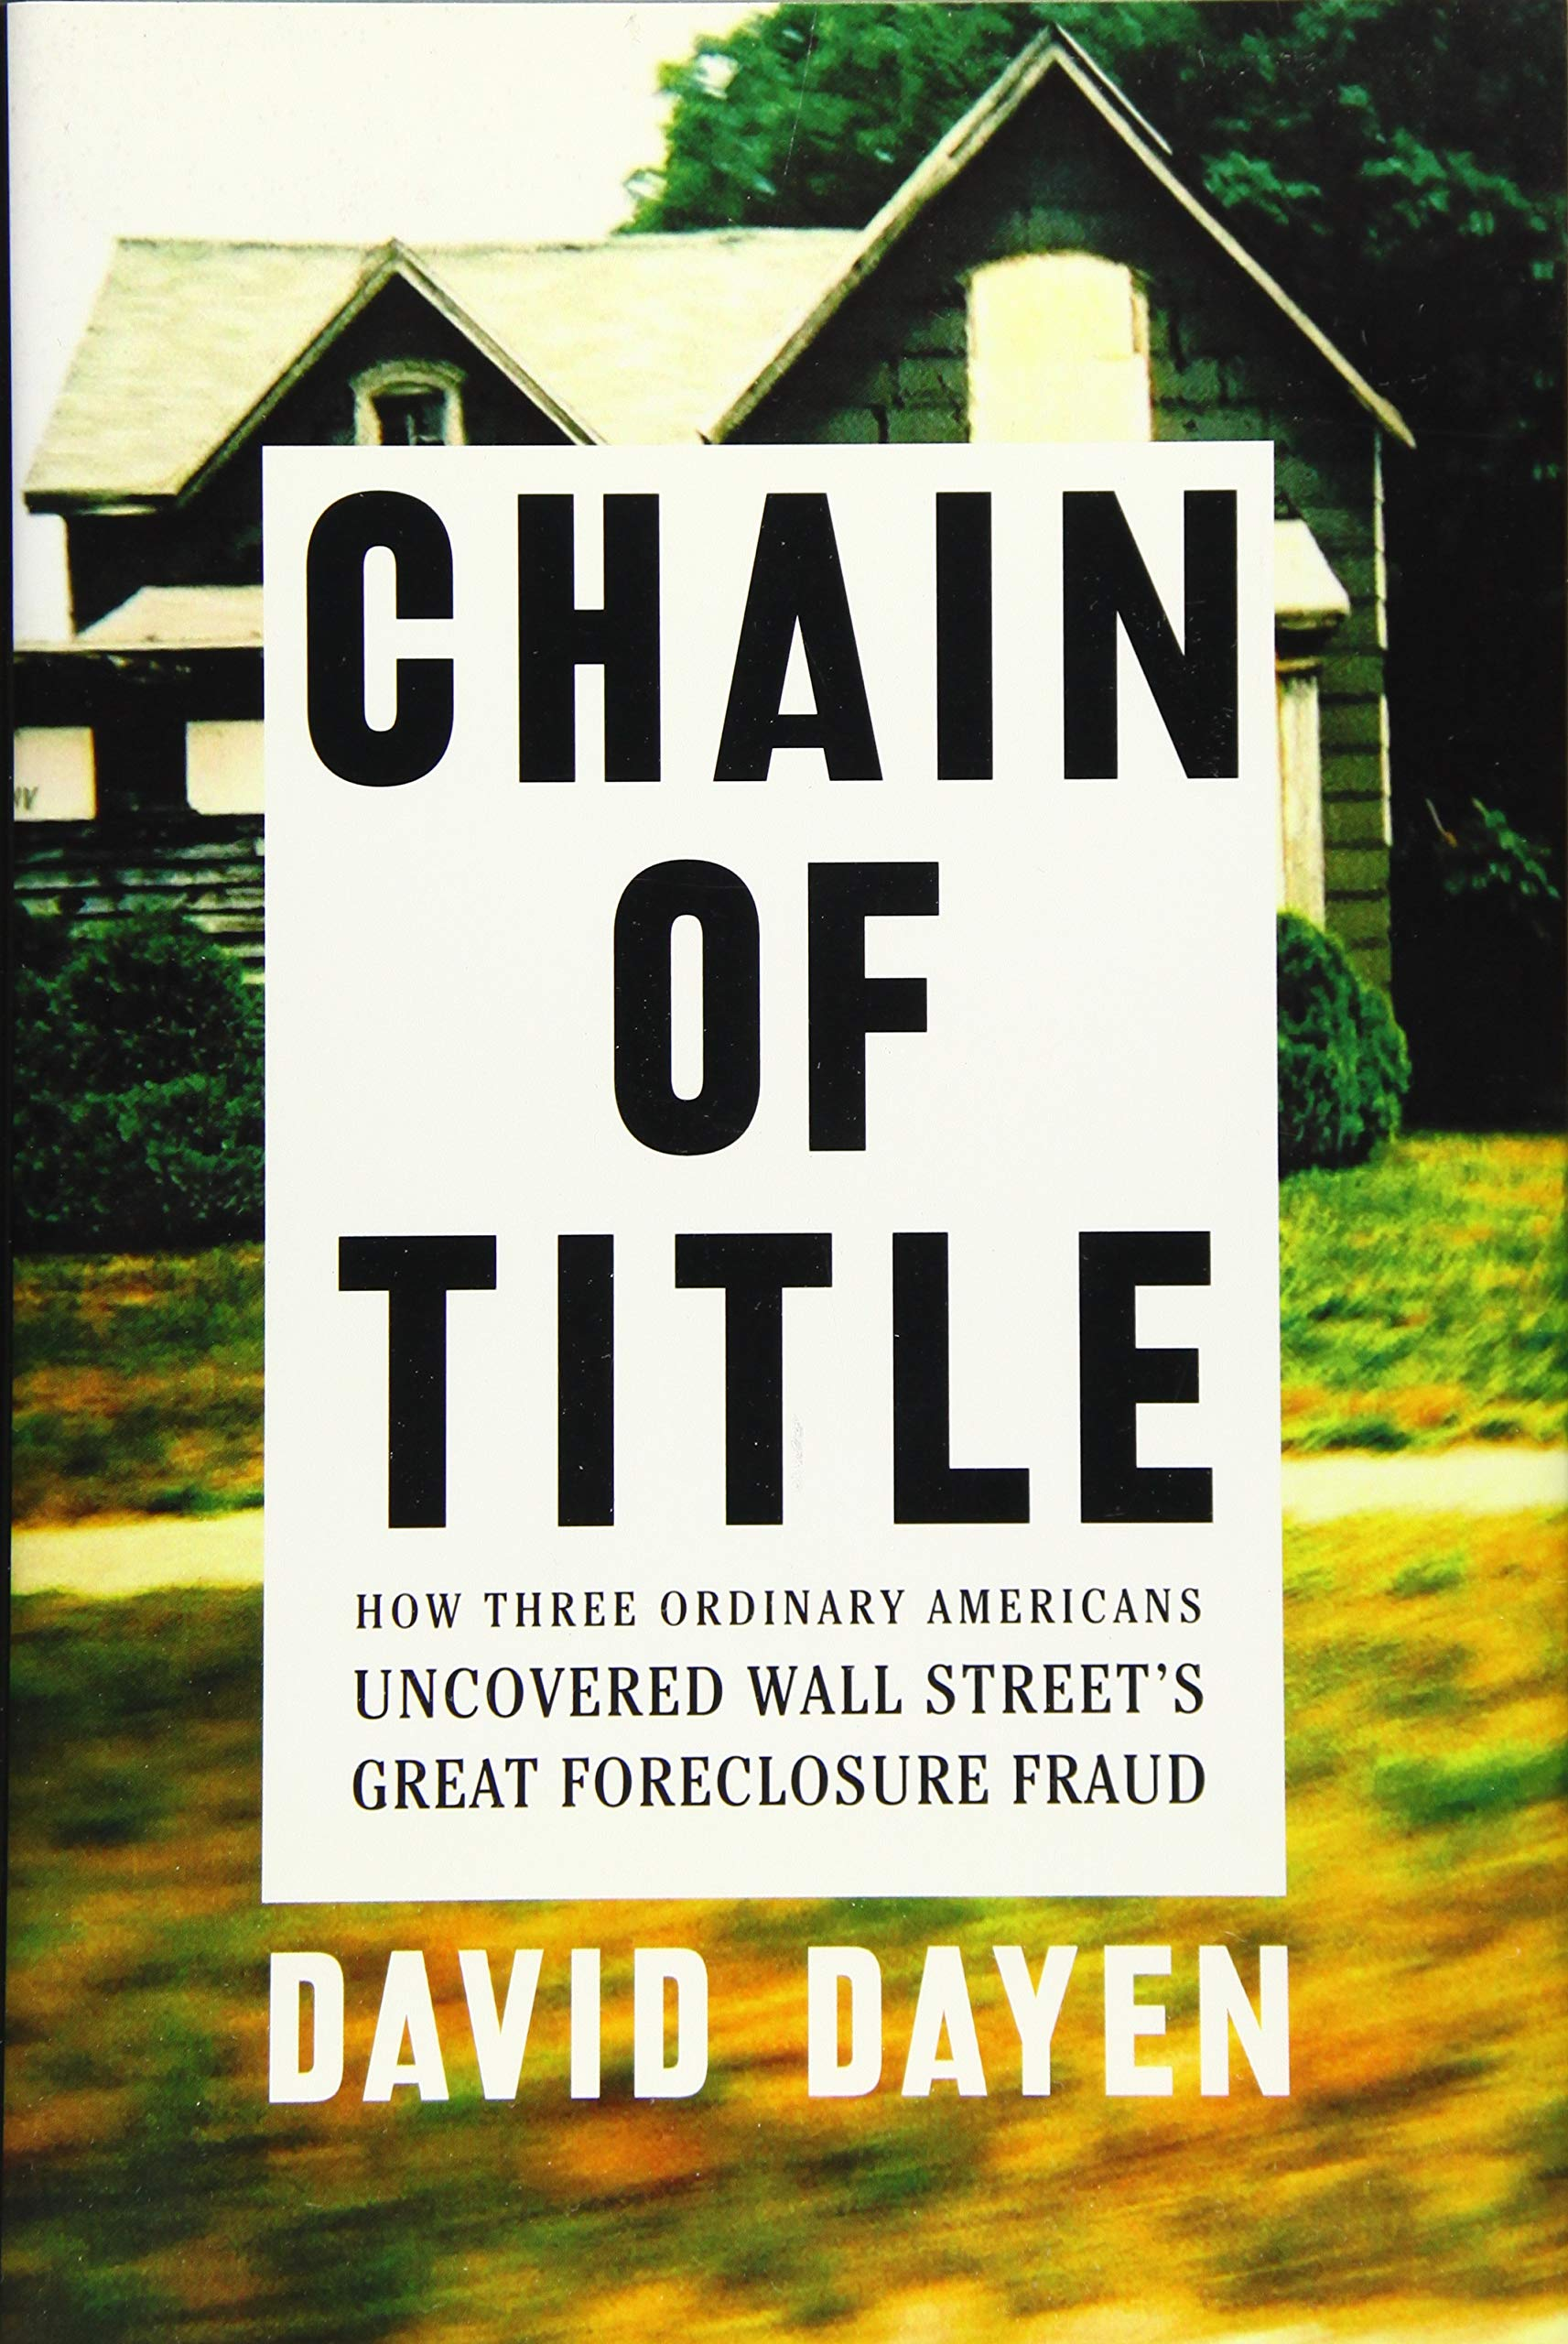 Chain Of Title  How Three Ordinary Americans Uncovered Wall Street's Great Foreclosure Fraud